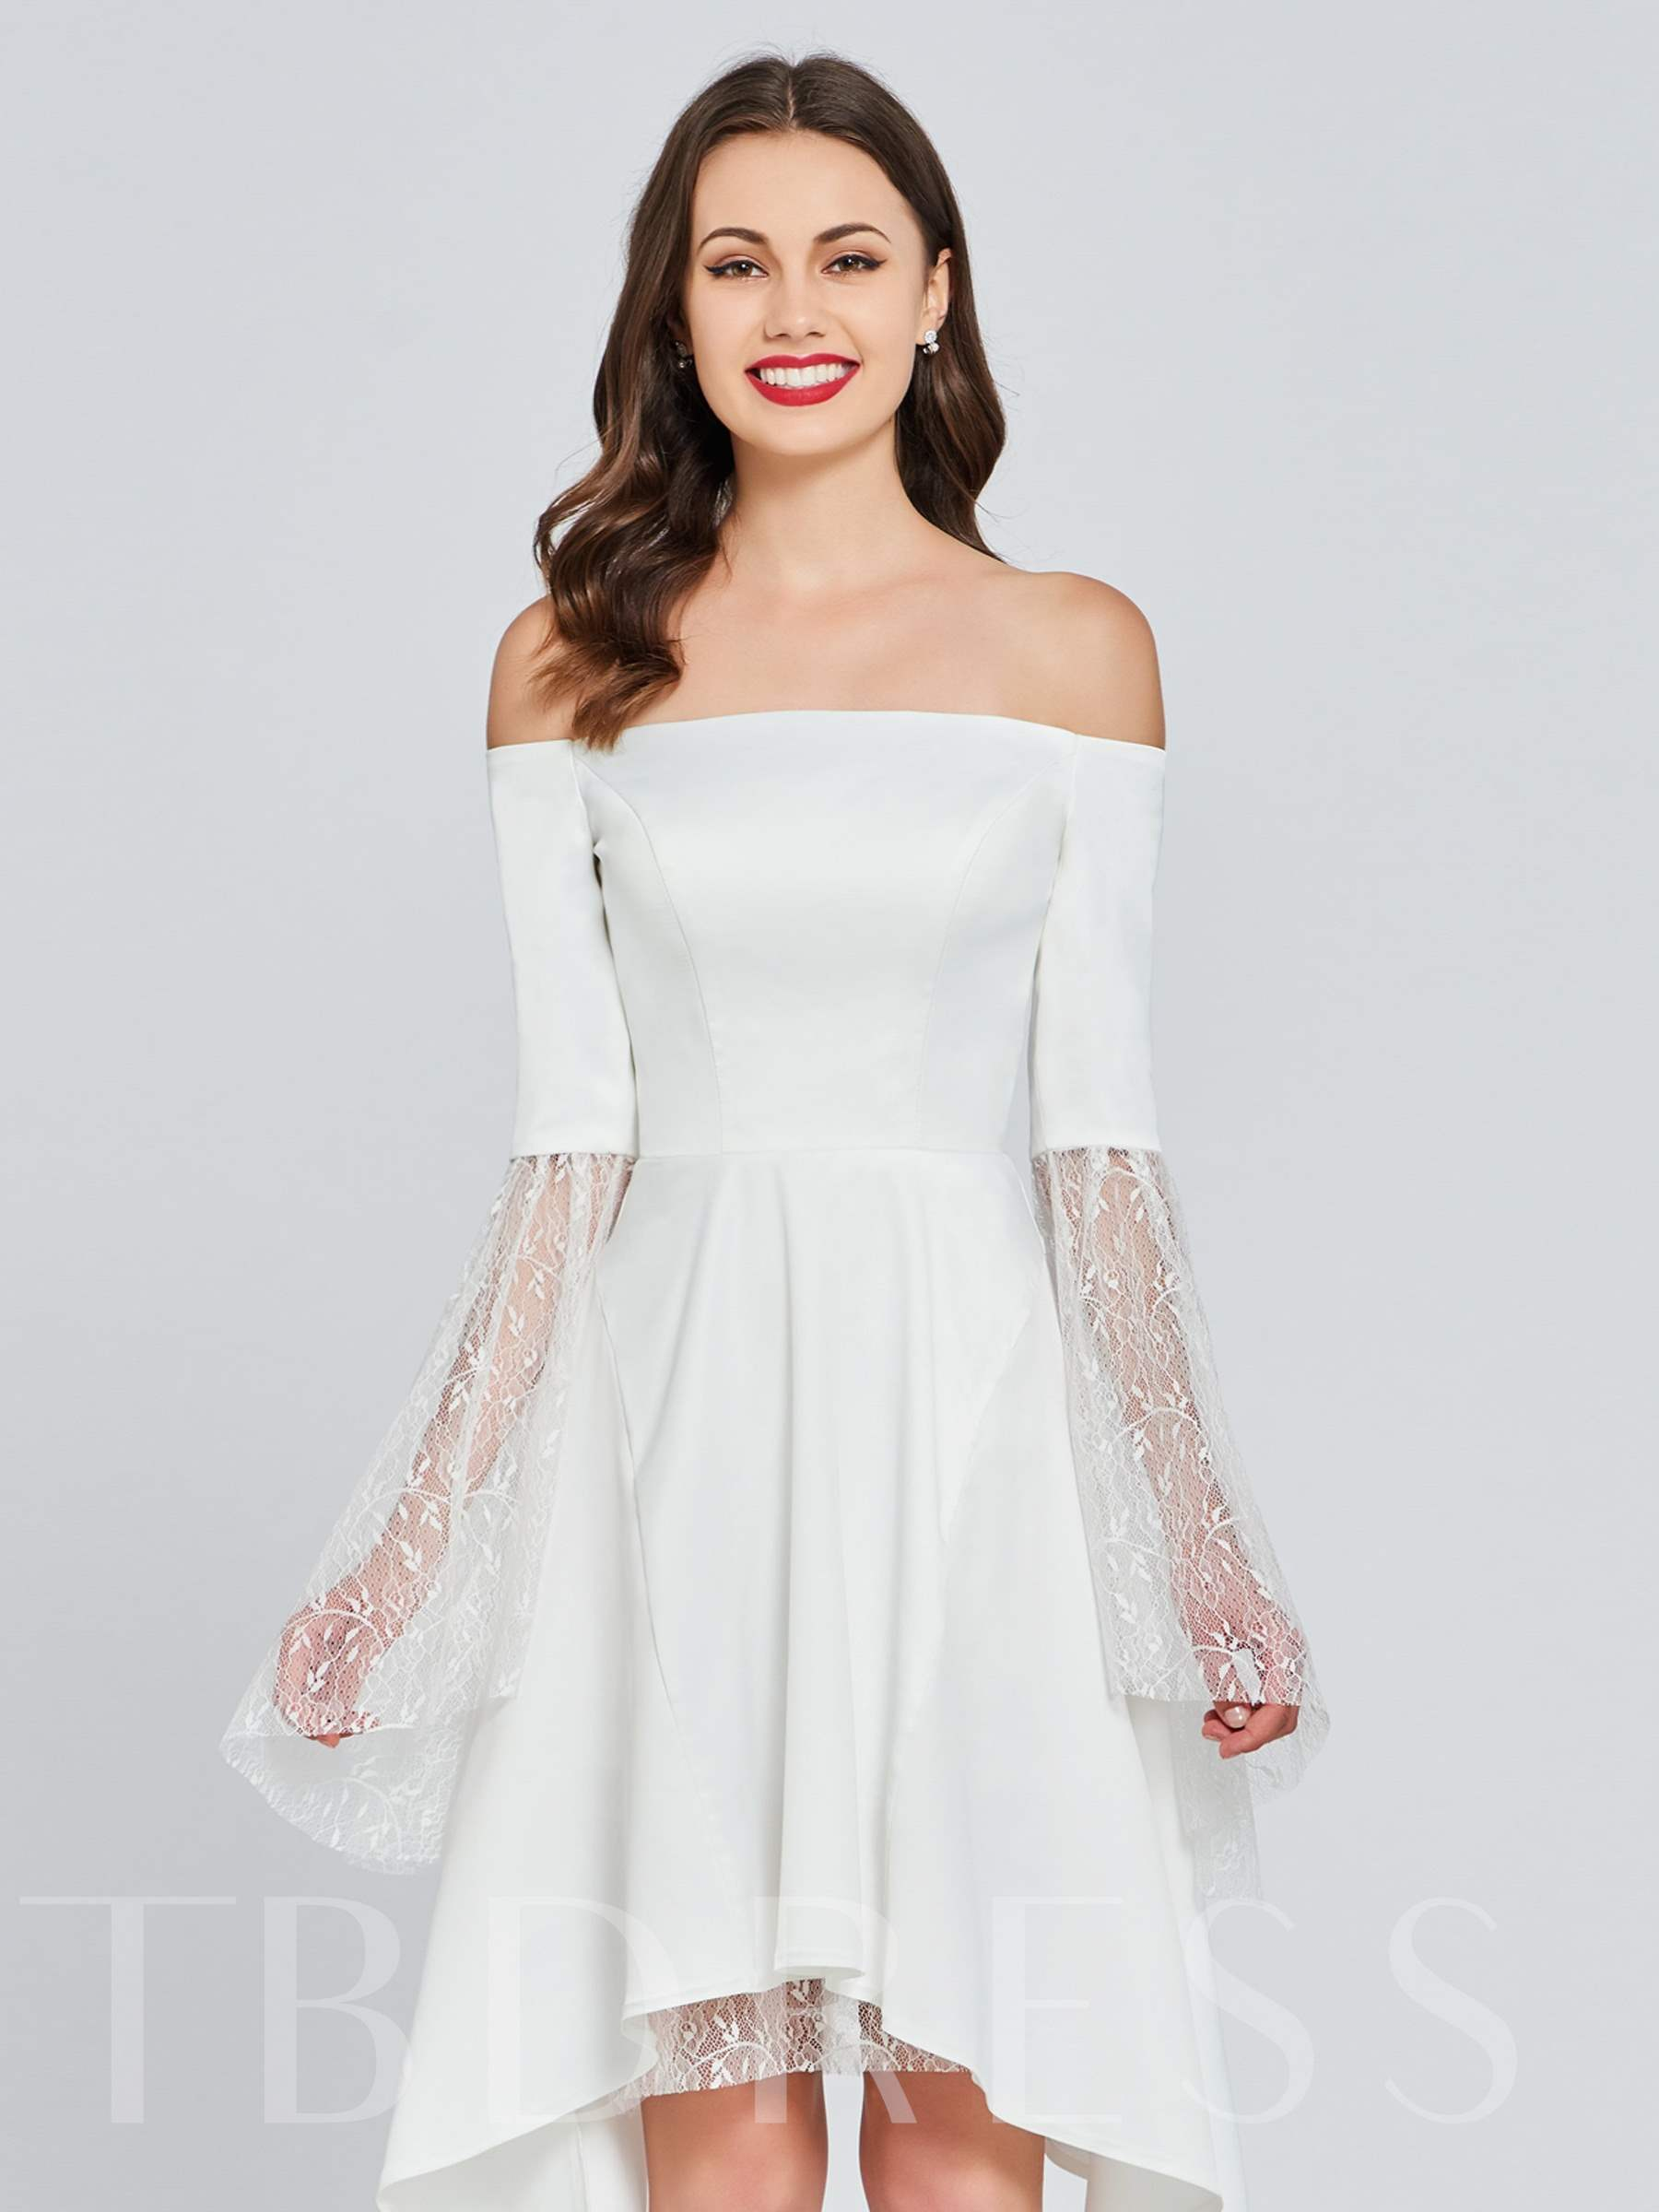 Buy Off-the-Shoulder Lace A-Line Homecoming Dress, Spring,Summer,Fall,Winter, 13384074 for $117.99 in TBDress store